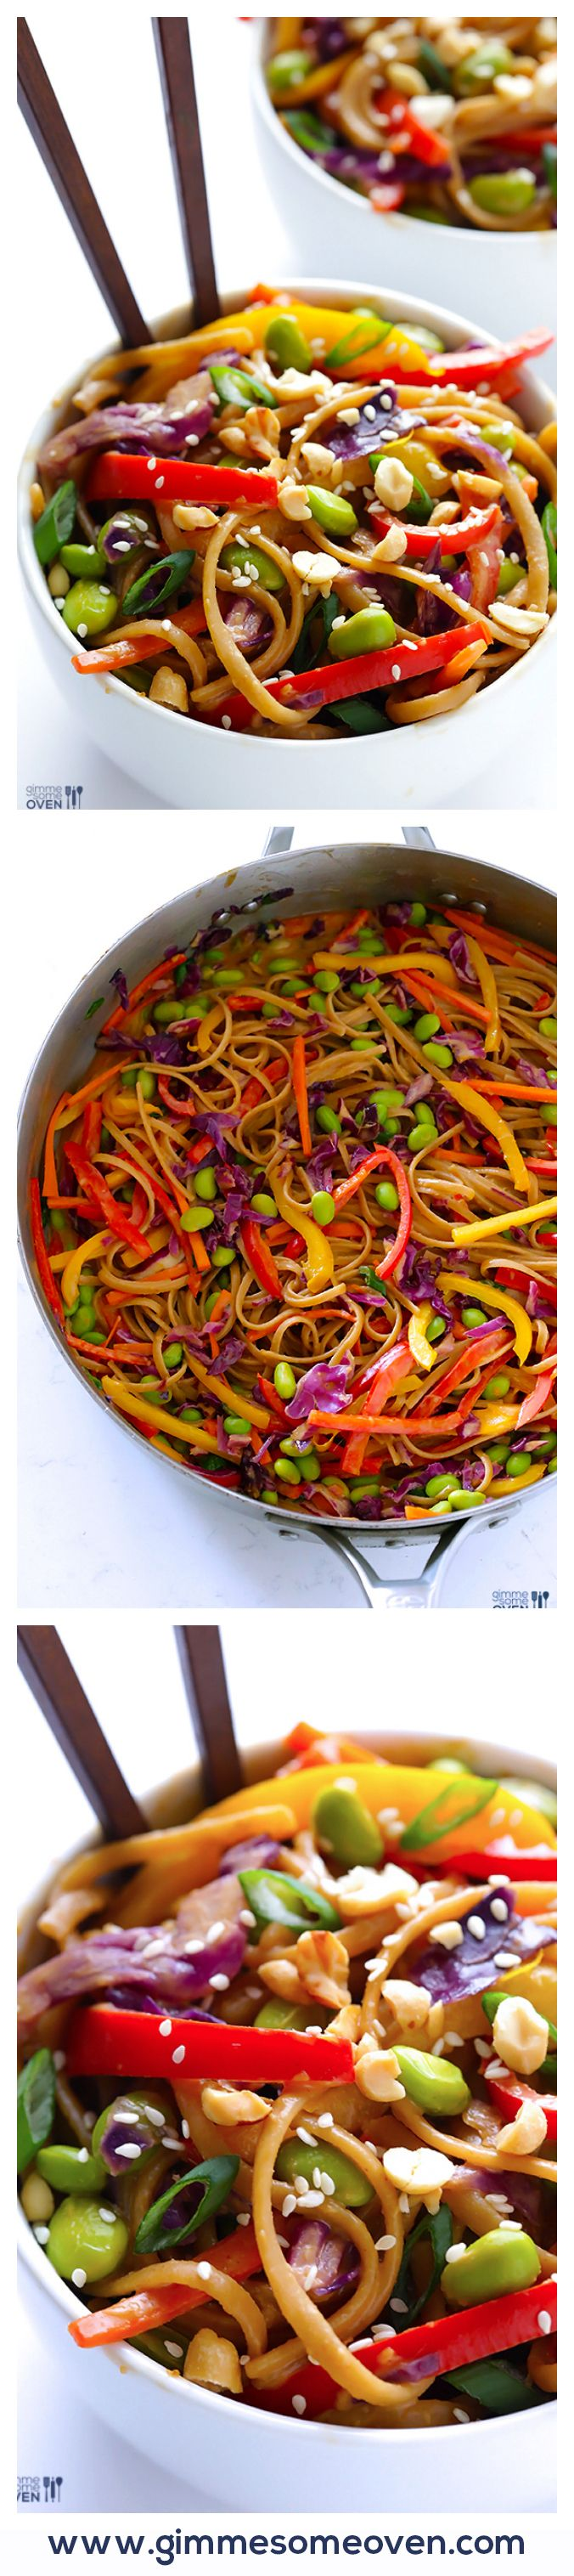 Easy Rainbow Peanut Noodles -- made with lots of fresh veggies, whole wheat pasta, and a CRAZY delicious peanut sauce! (for Vegan sub maple syrup for honey - for GF use gf pasta)